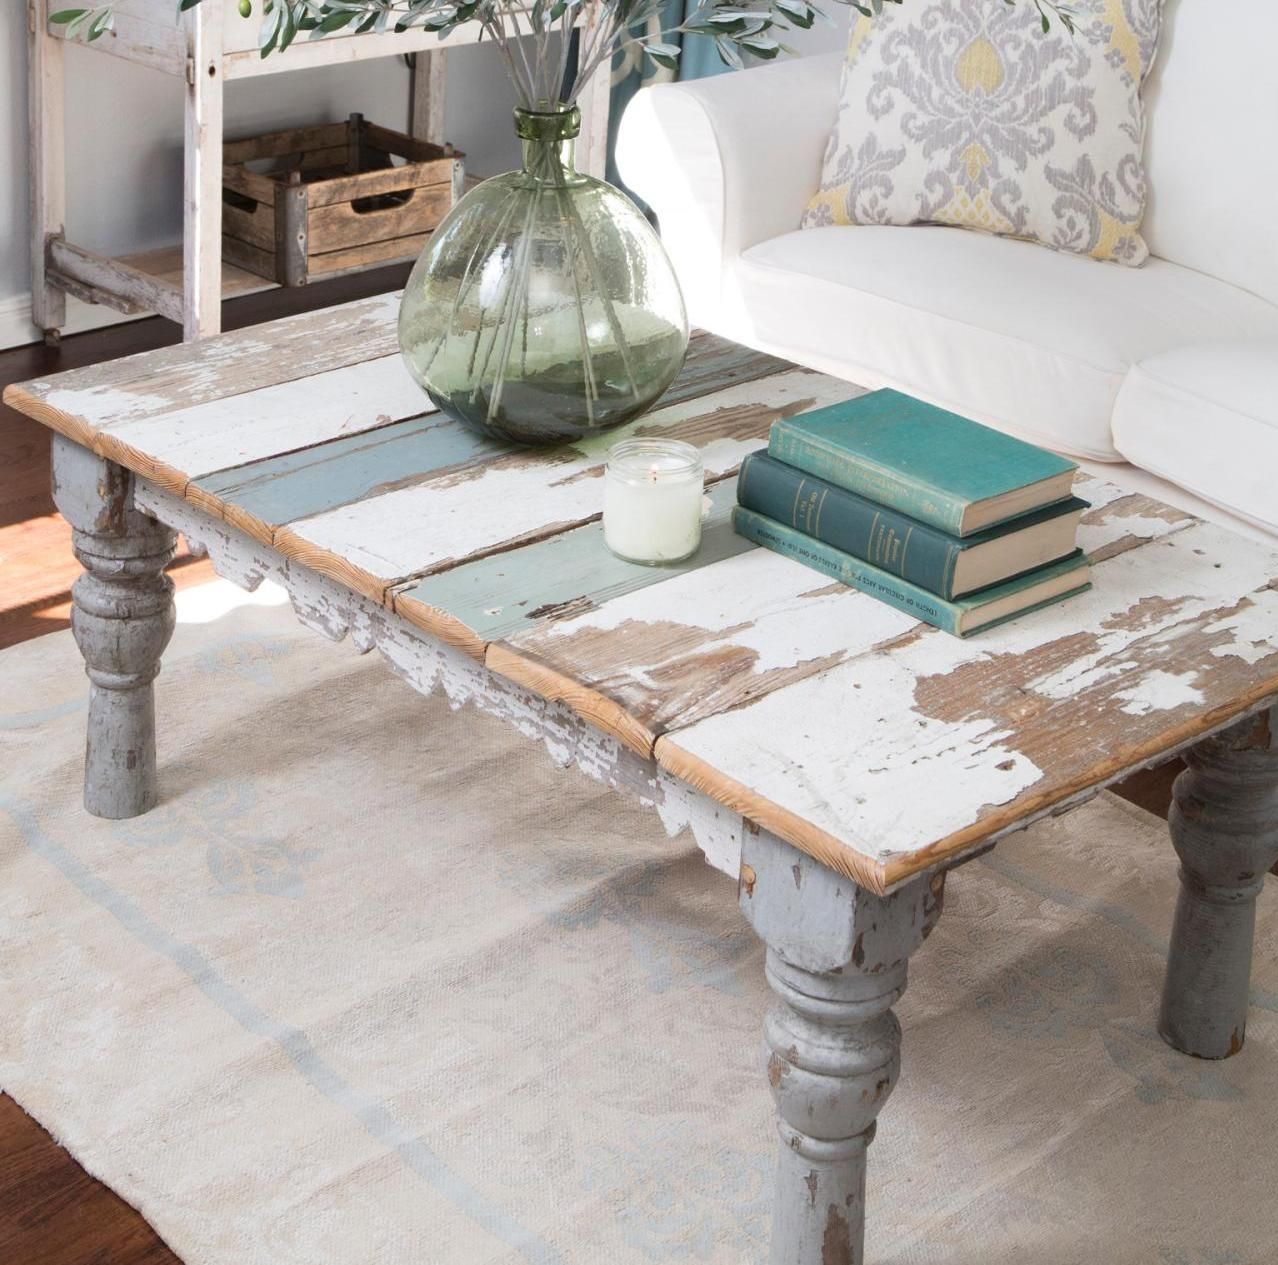 Distressed Painted Coffee Table - Distressed Painted Coffee Table Coffee Tables Pinterest